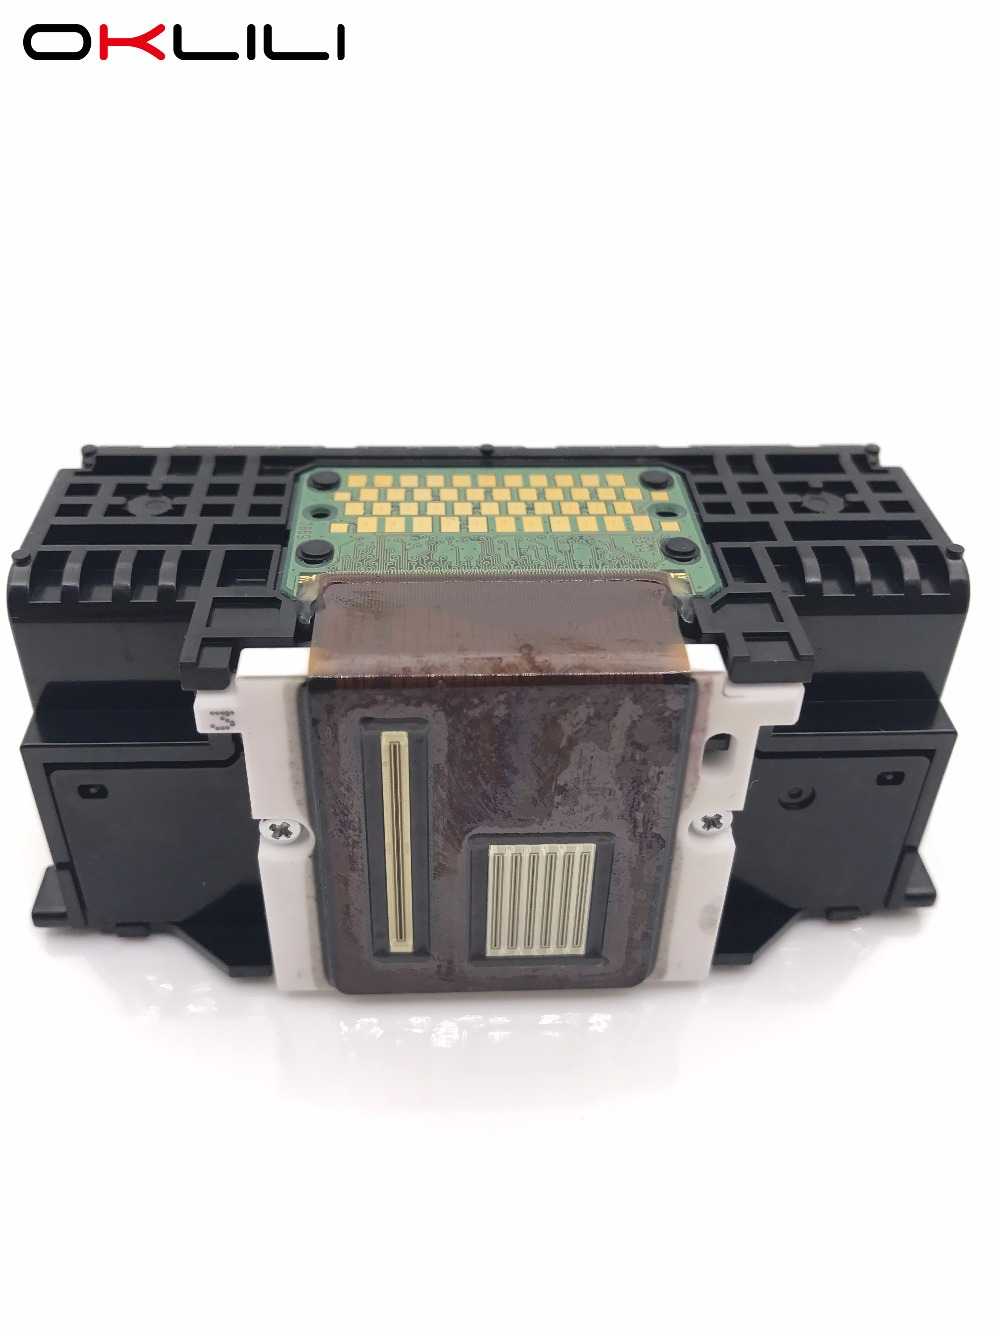 QY6-0082 Printhead Print Head for Canon iP7210 iP7220 iP7250 MG5420 MG5450 MG5520 MG5550 MG6420 MG6450 MG5500 MG5740 MG5750